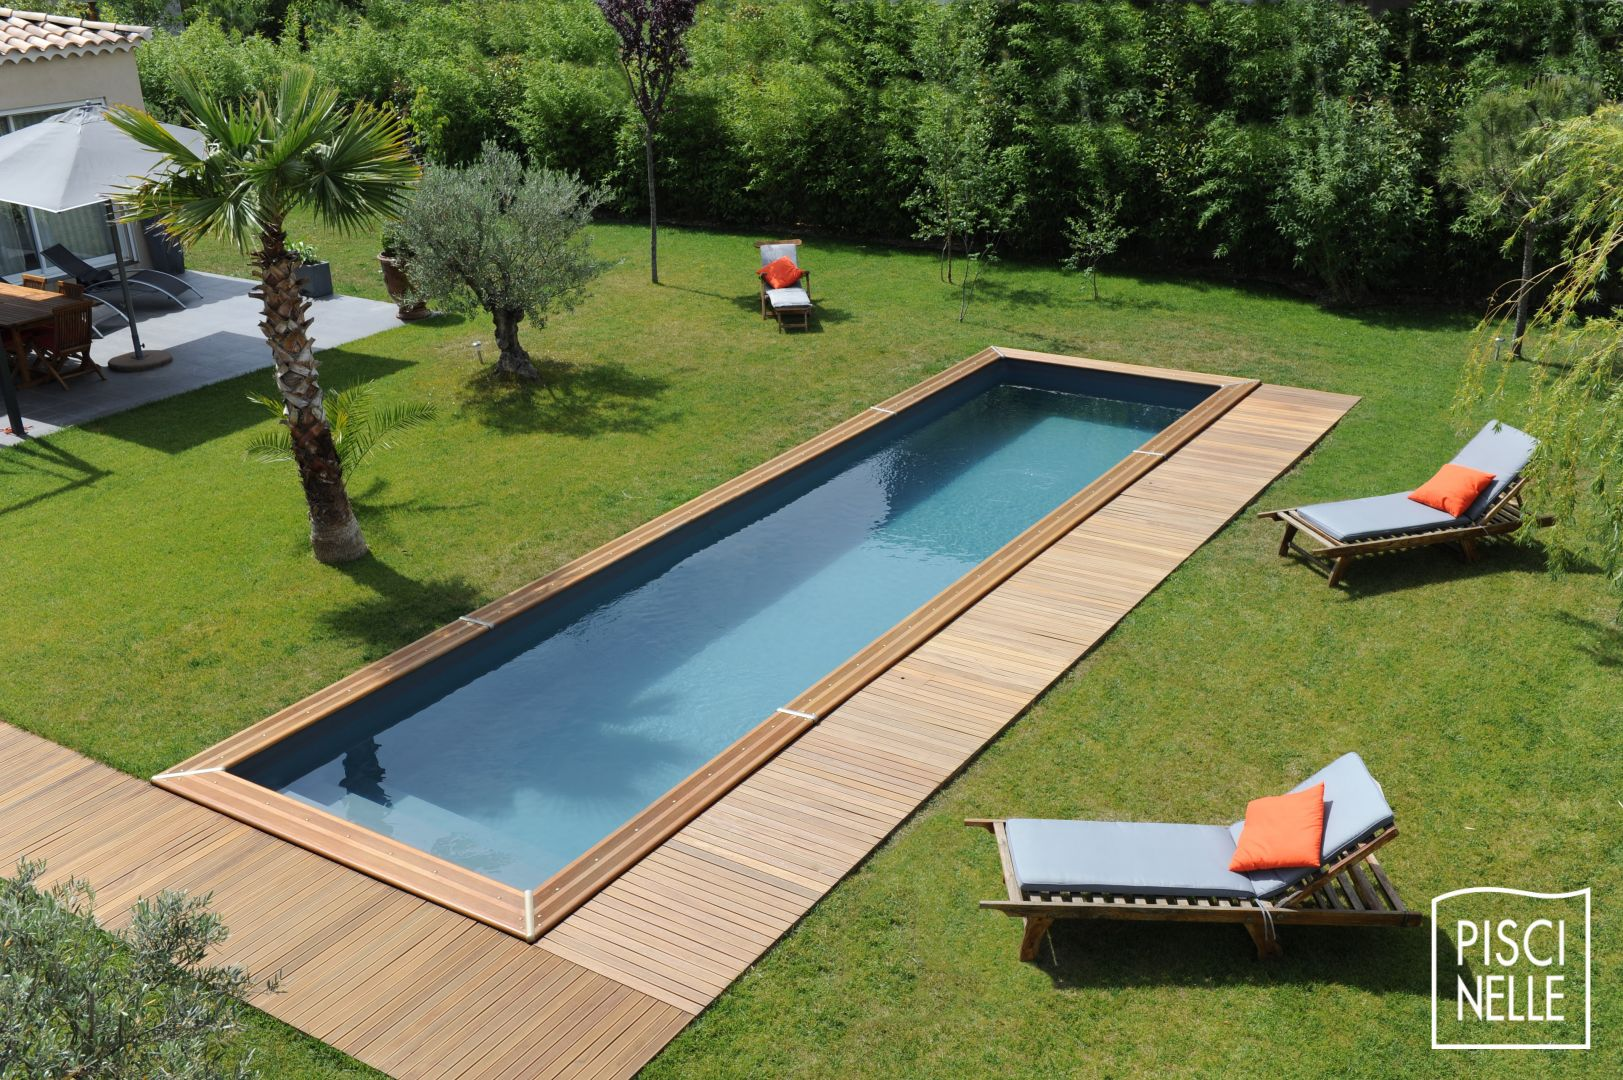 Piscine semi enterree bois prix for Piscine enterree prix